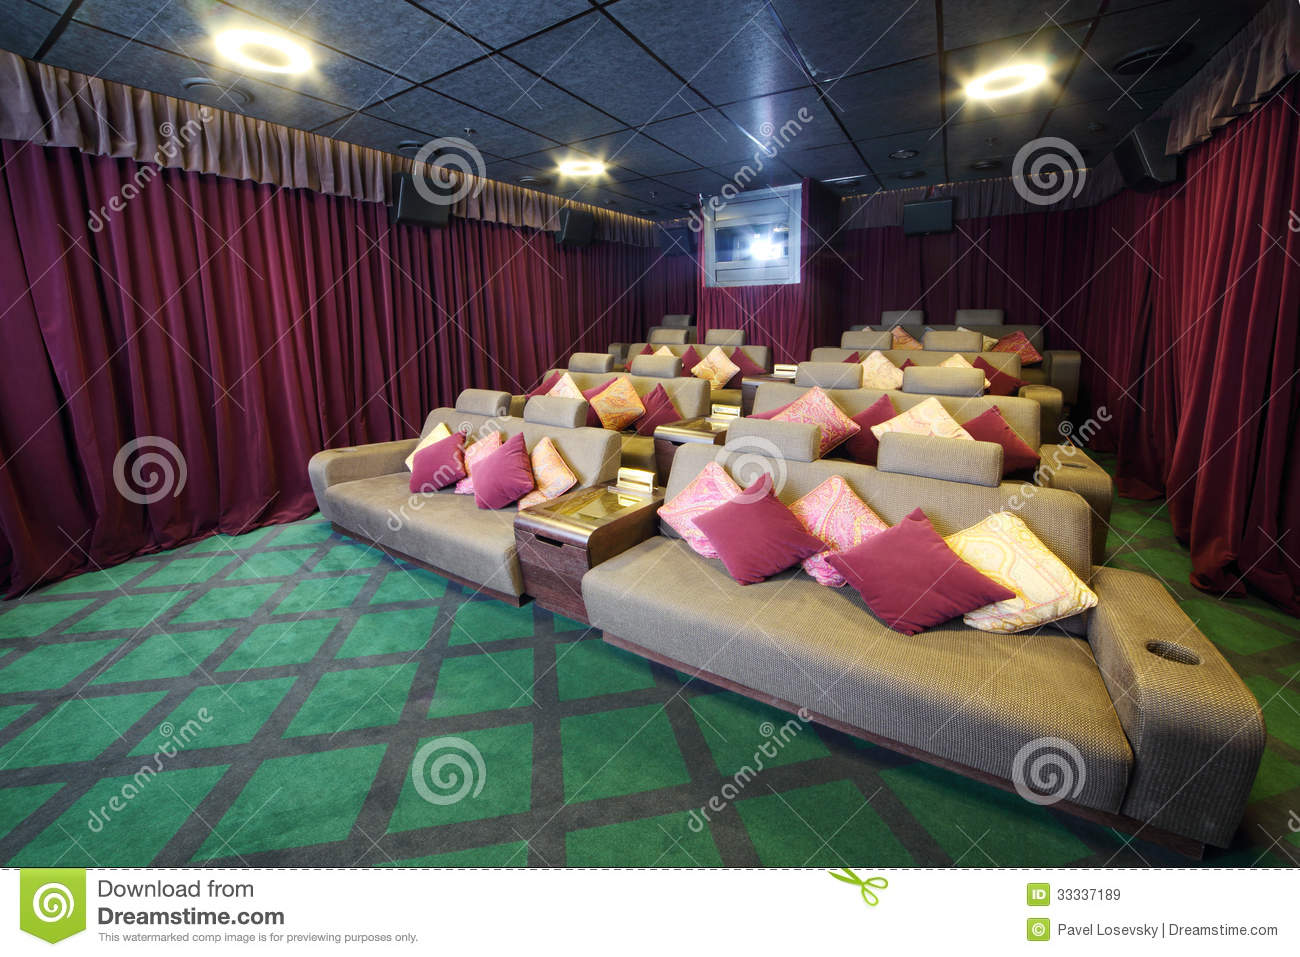 Couches With Cushions And Projector In Small Movie Theate